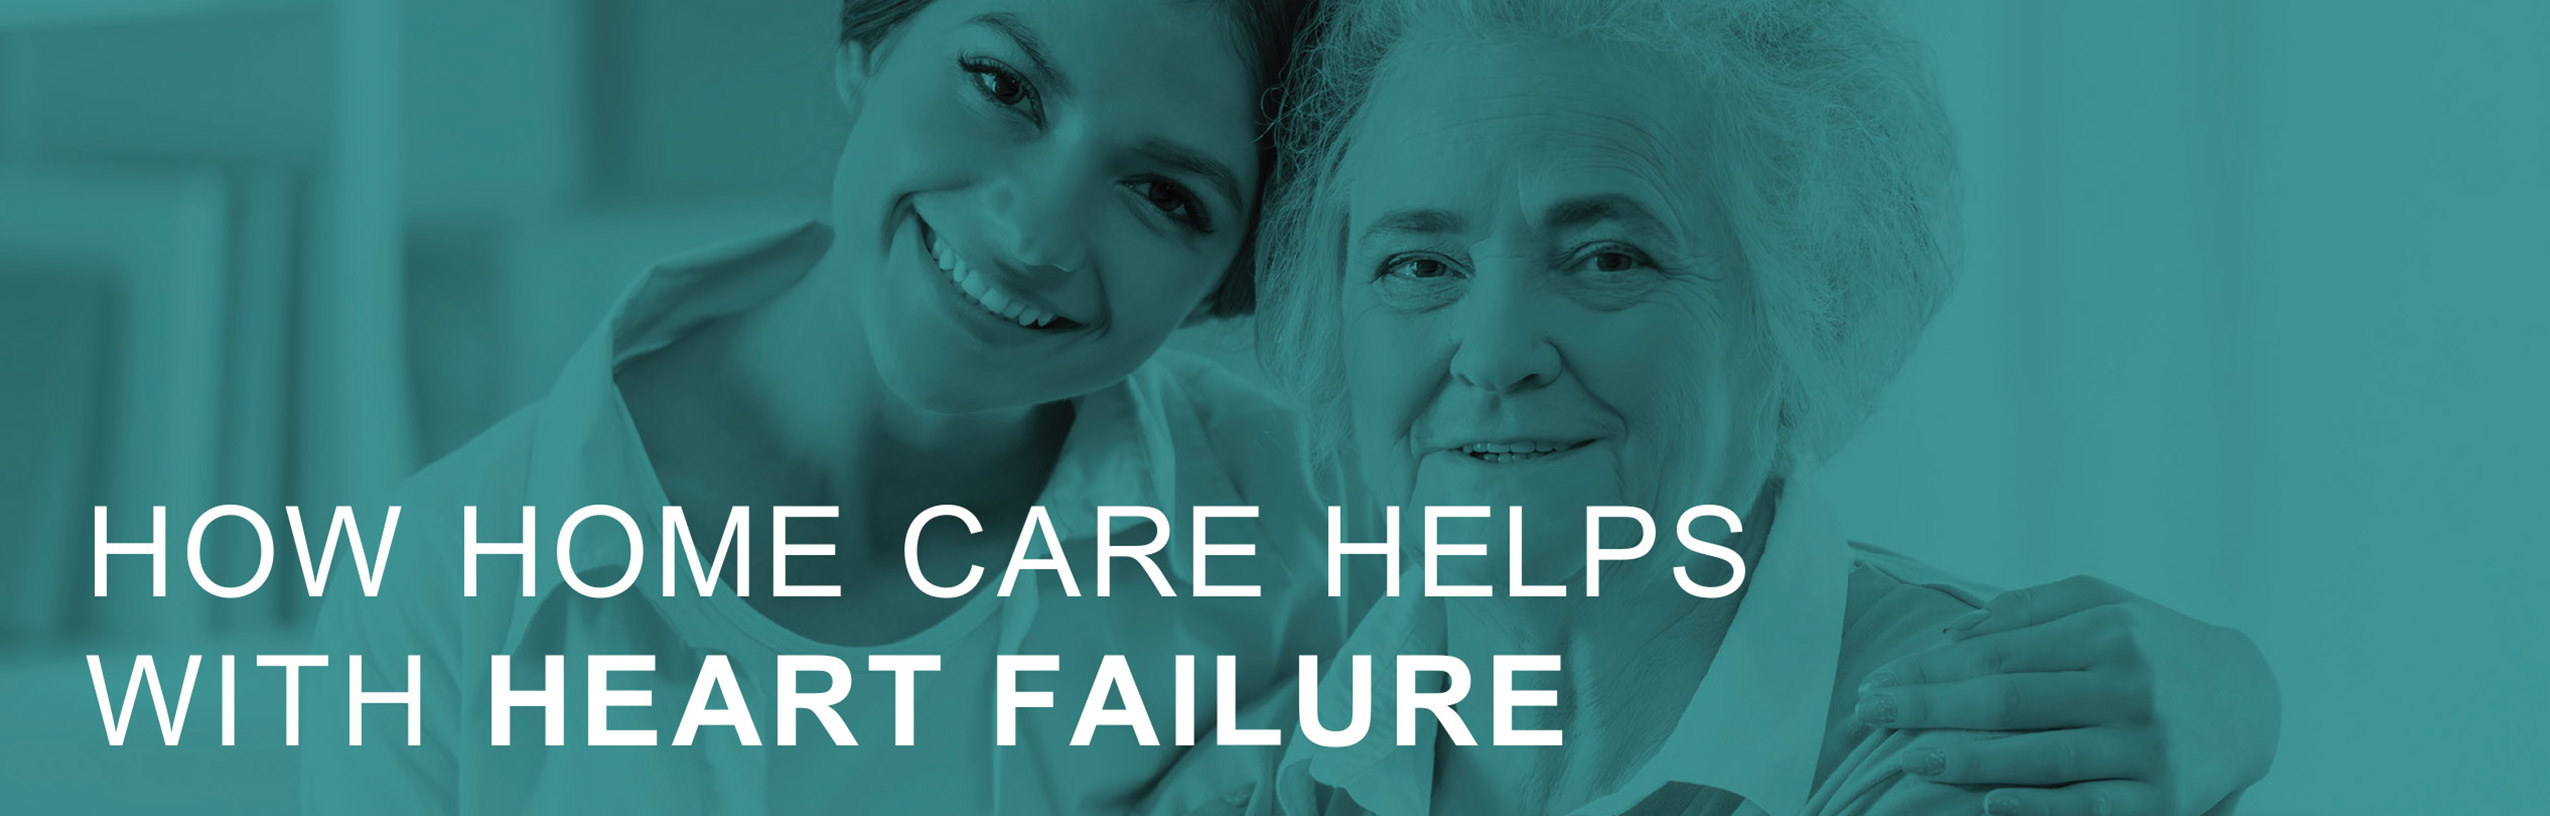 Helpful Home Care info about heart failure